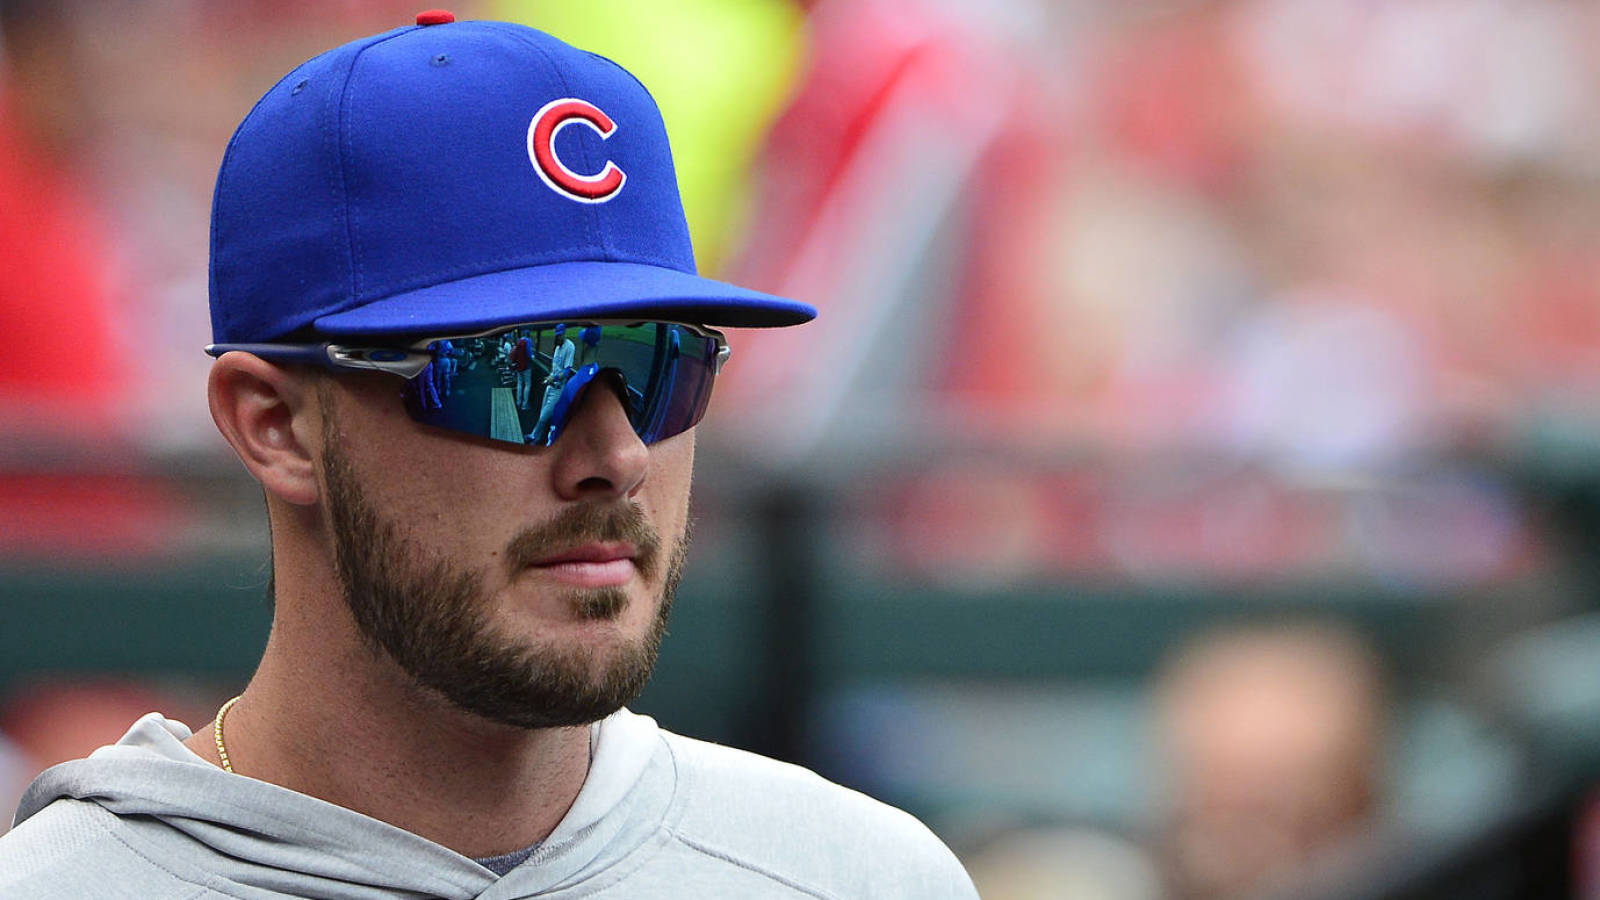 Watch: Kris Bryant nails Ian Desmond on perfect throw from left field